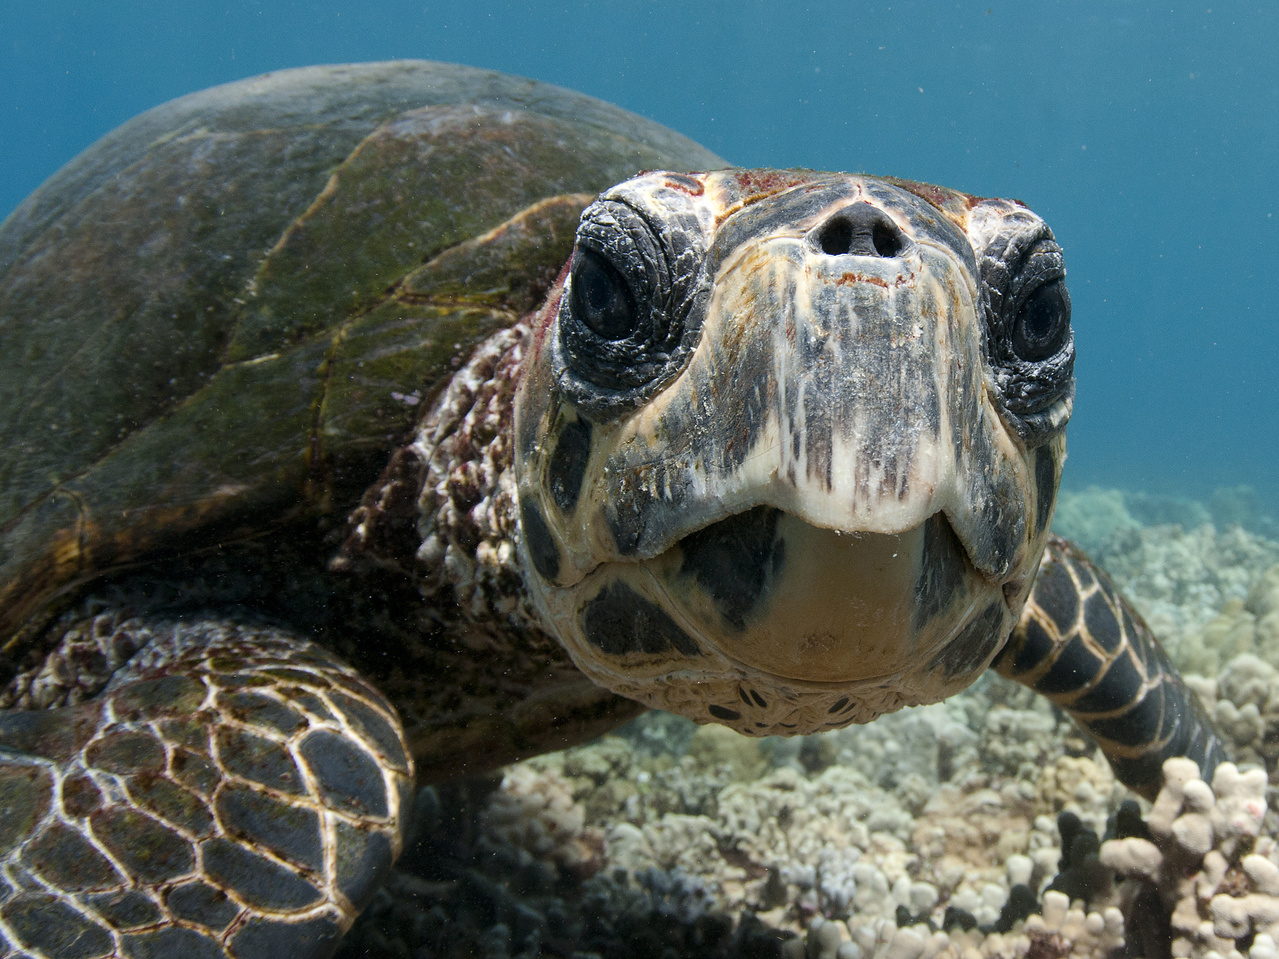 A close-up image of a Hawaiian hawksbill looking into the camera